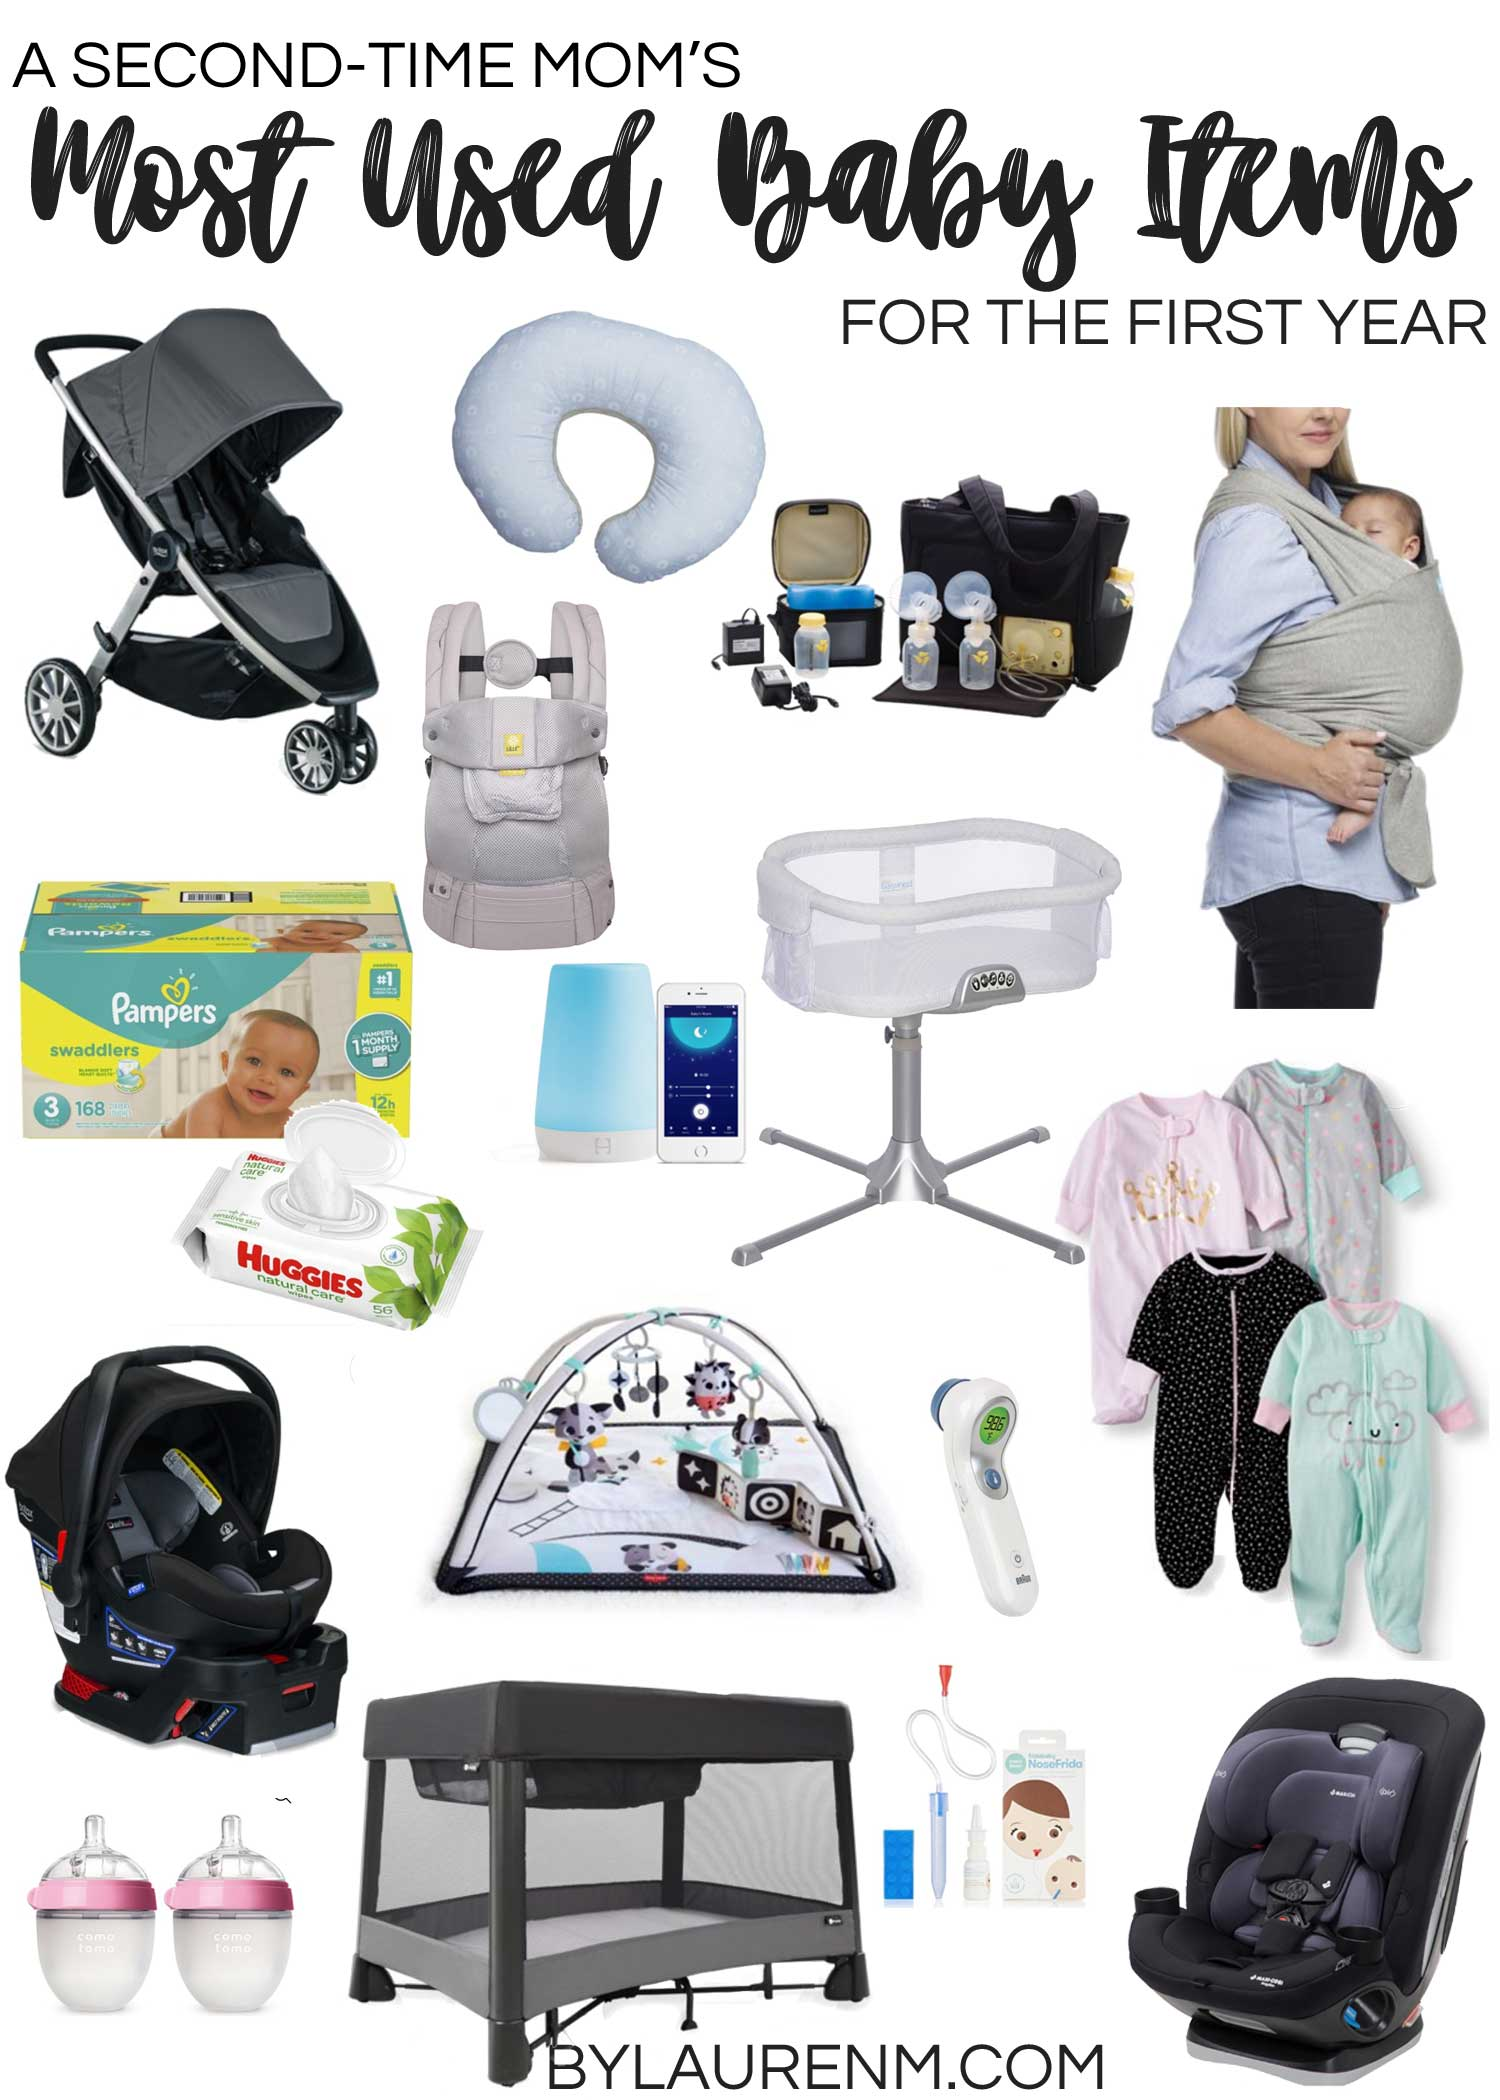 Second time mom, Lauren Dix, shares her most used baby items for the first year! From baby health to sleep necessities to feeding and everything in between, she covers it all in this post!